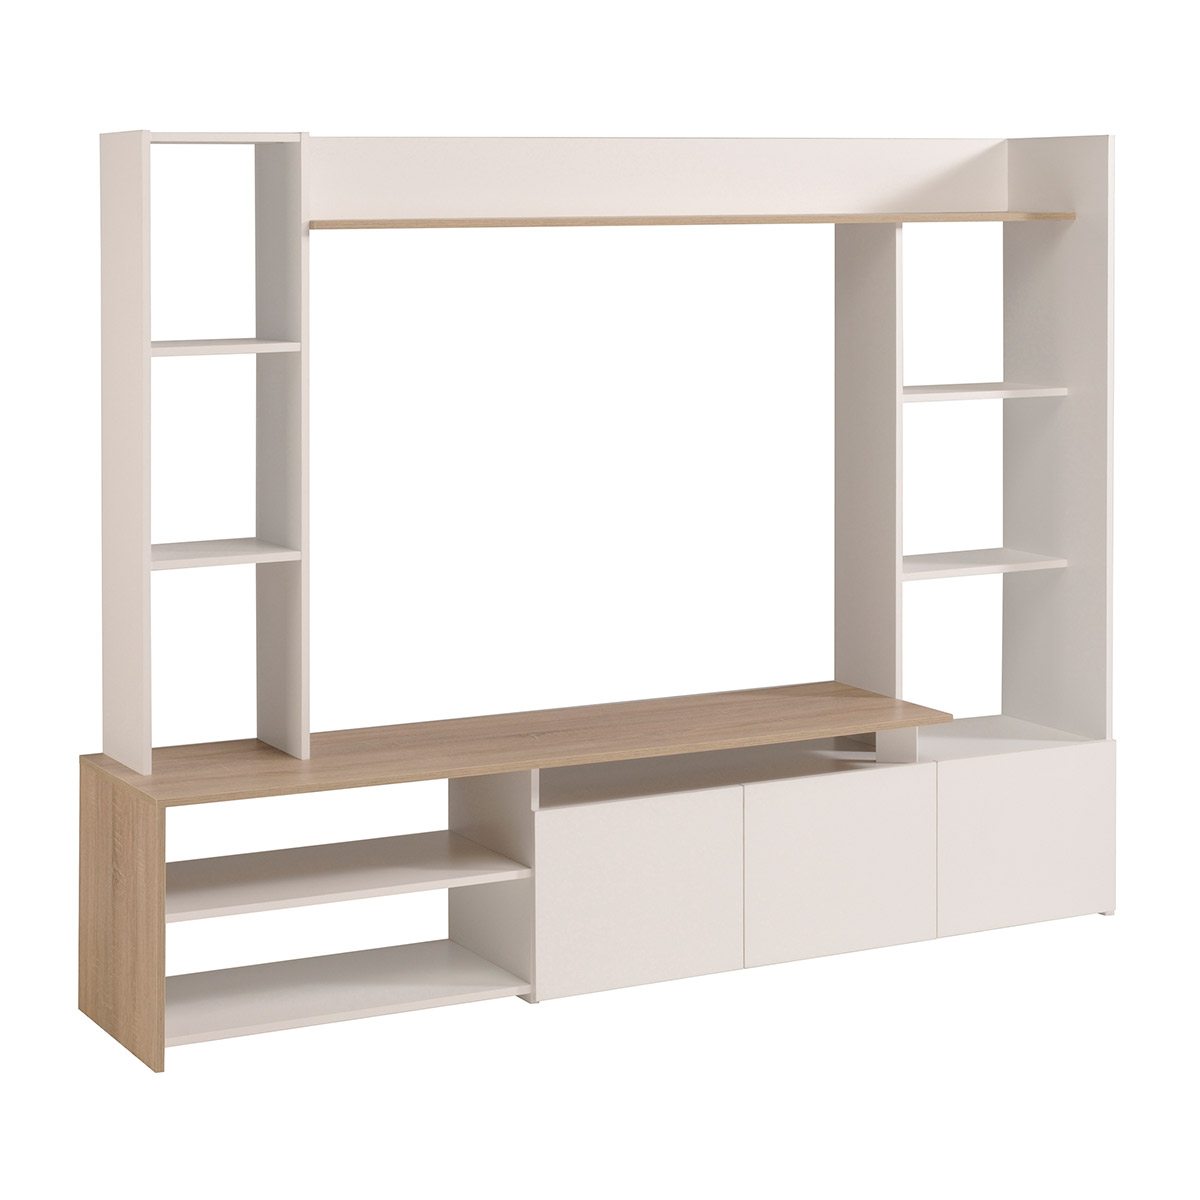 Up TV Wall Unit with 3 Doors